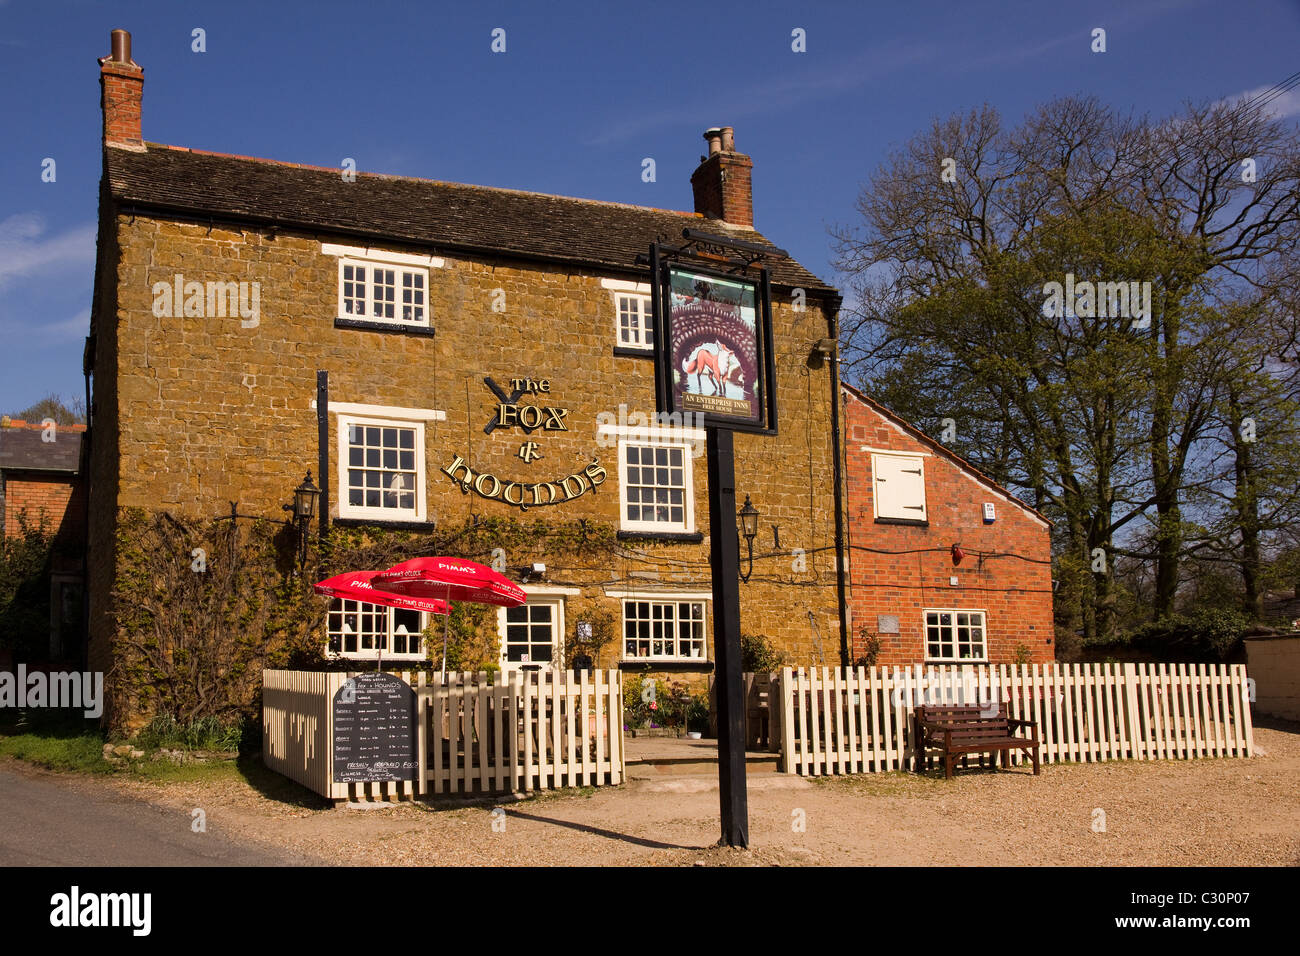 Old English Village Pub 'Fox and Hounds' Knossington, Leicestershire, England, UK - Stock Image